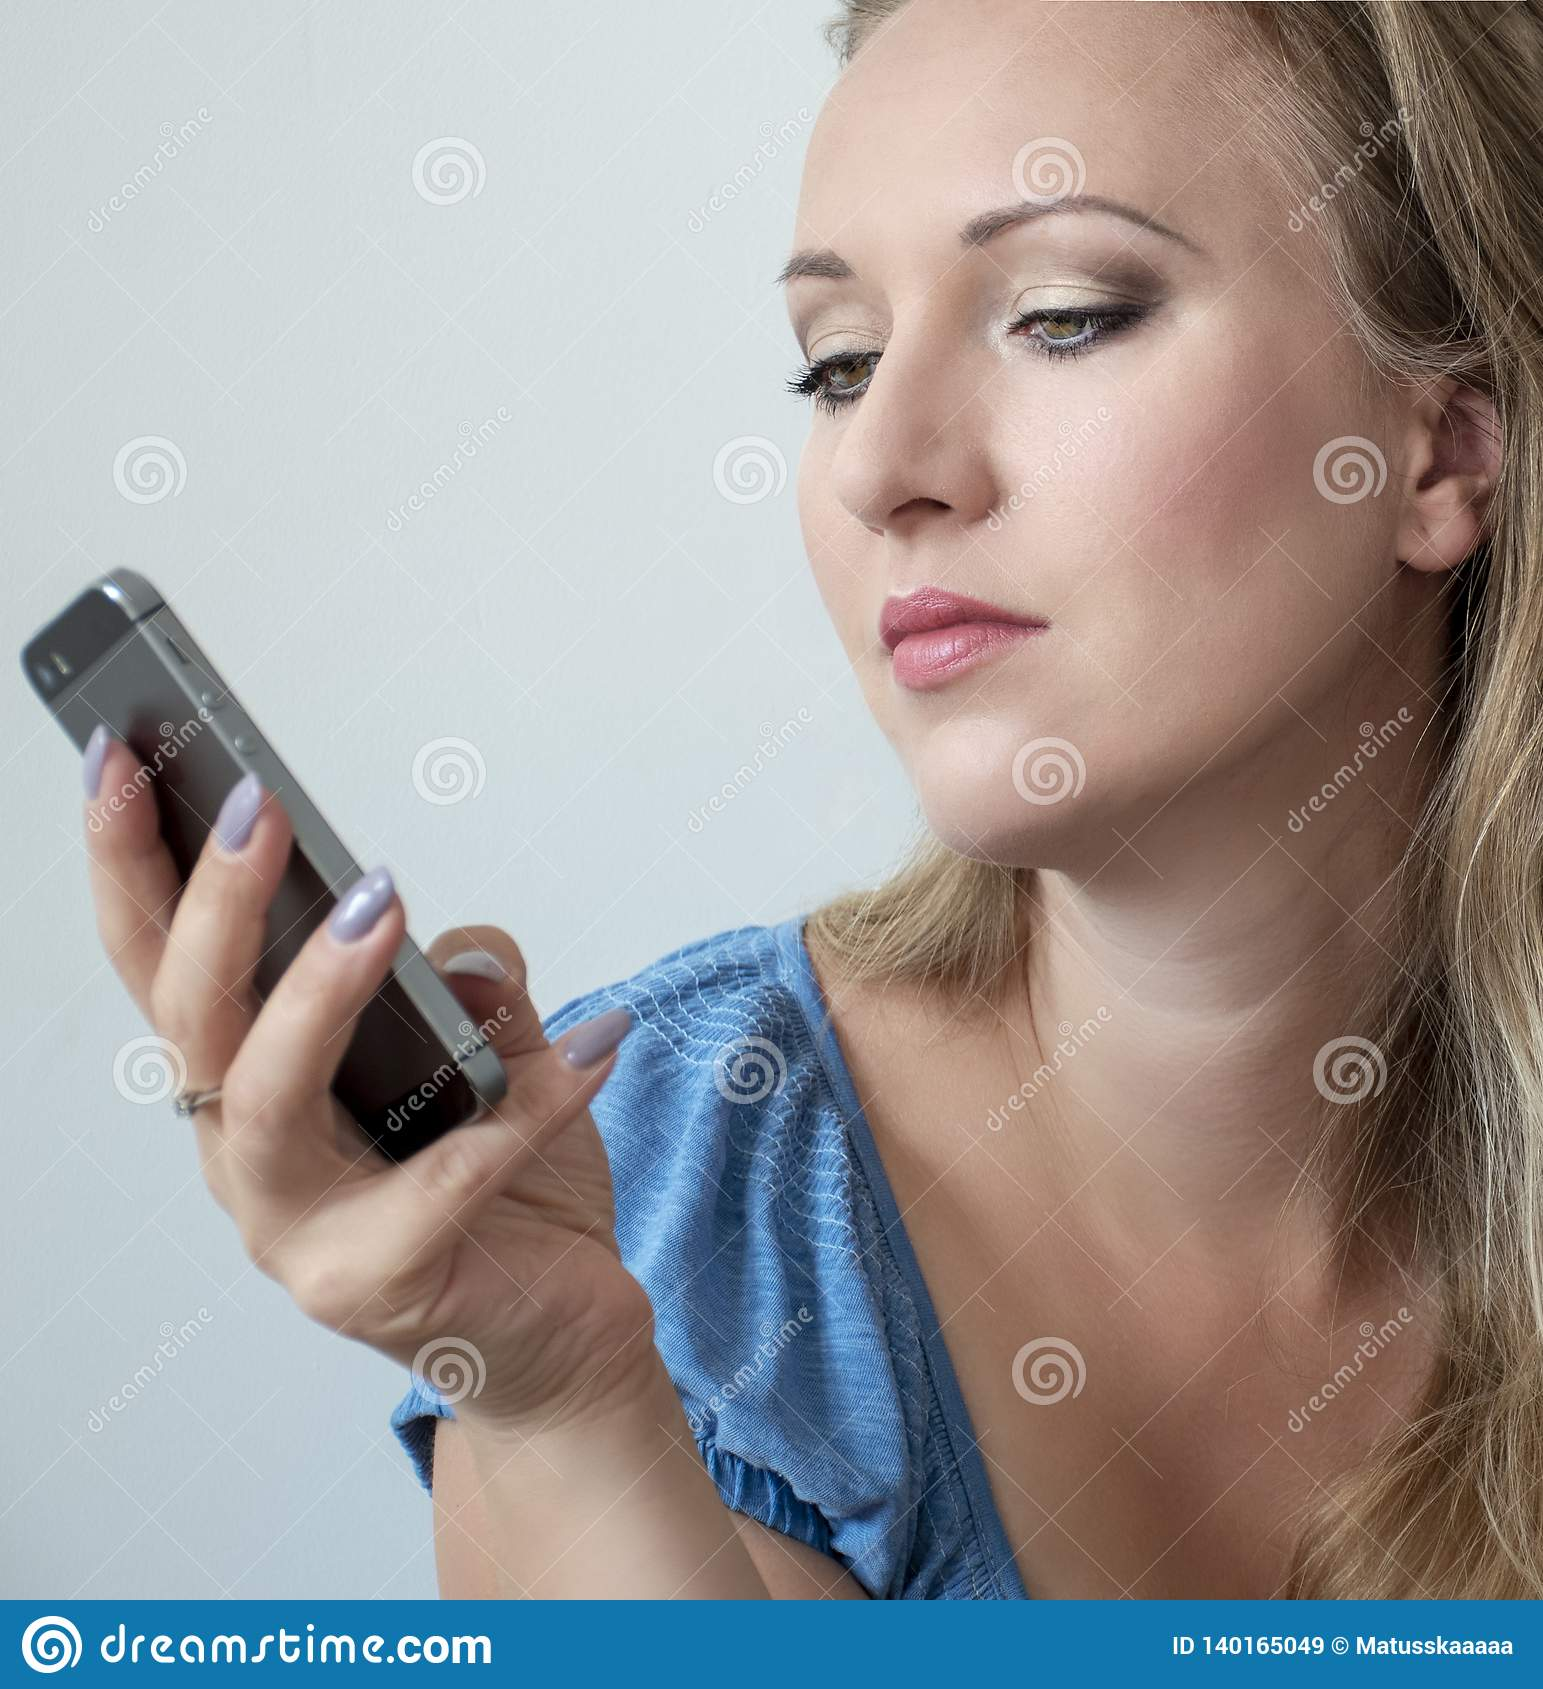 Portrait of attractive young woman looking on the phone. Pretty woman with green eyes and long blonde hair holding smartphone